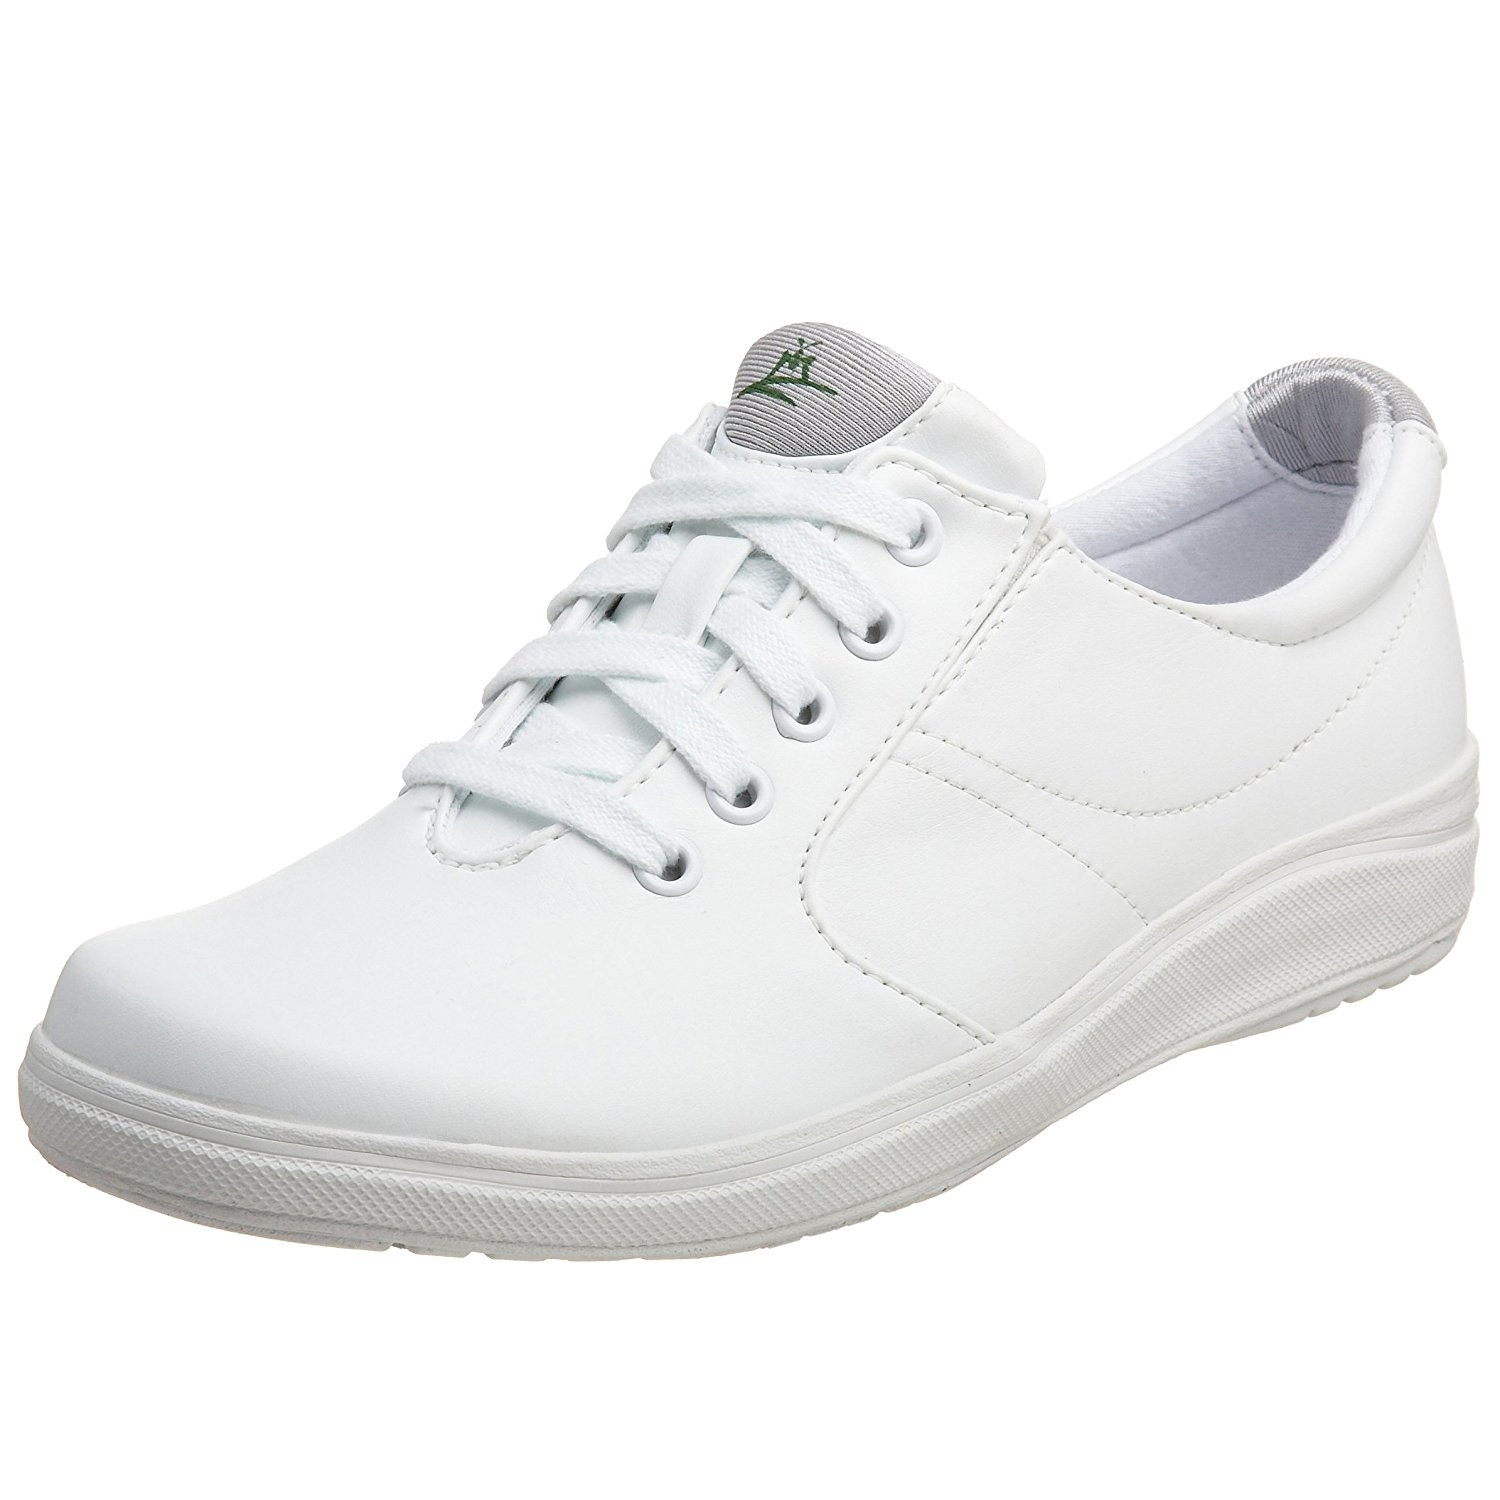 6c44c91ac96ee 21 Of The Best Pairs Of Fashion Sneakers You Can Get On Amazon